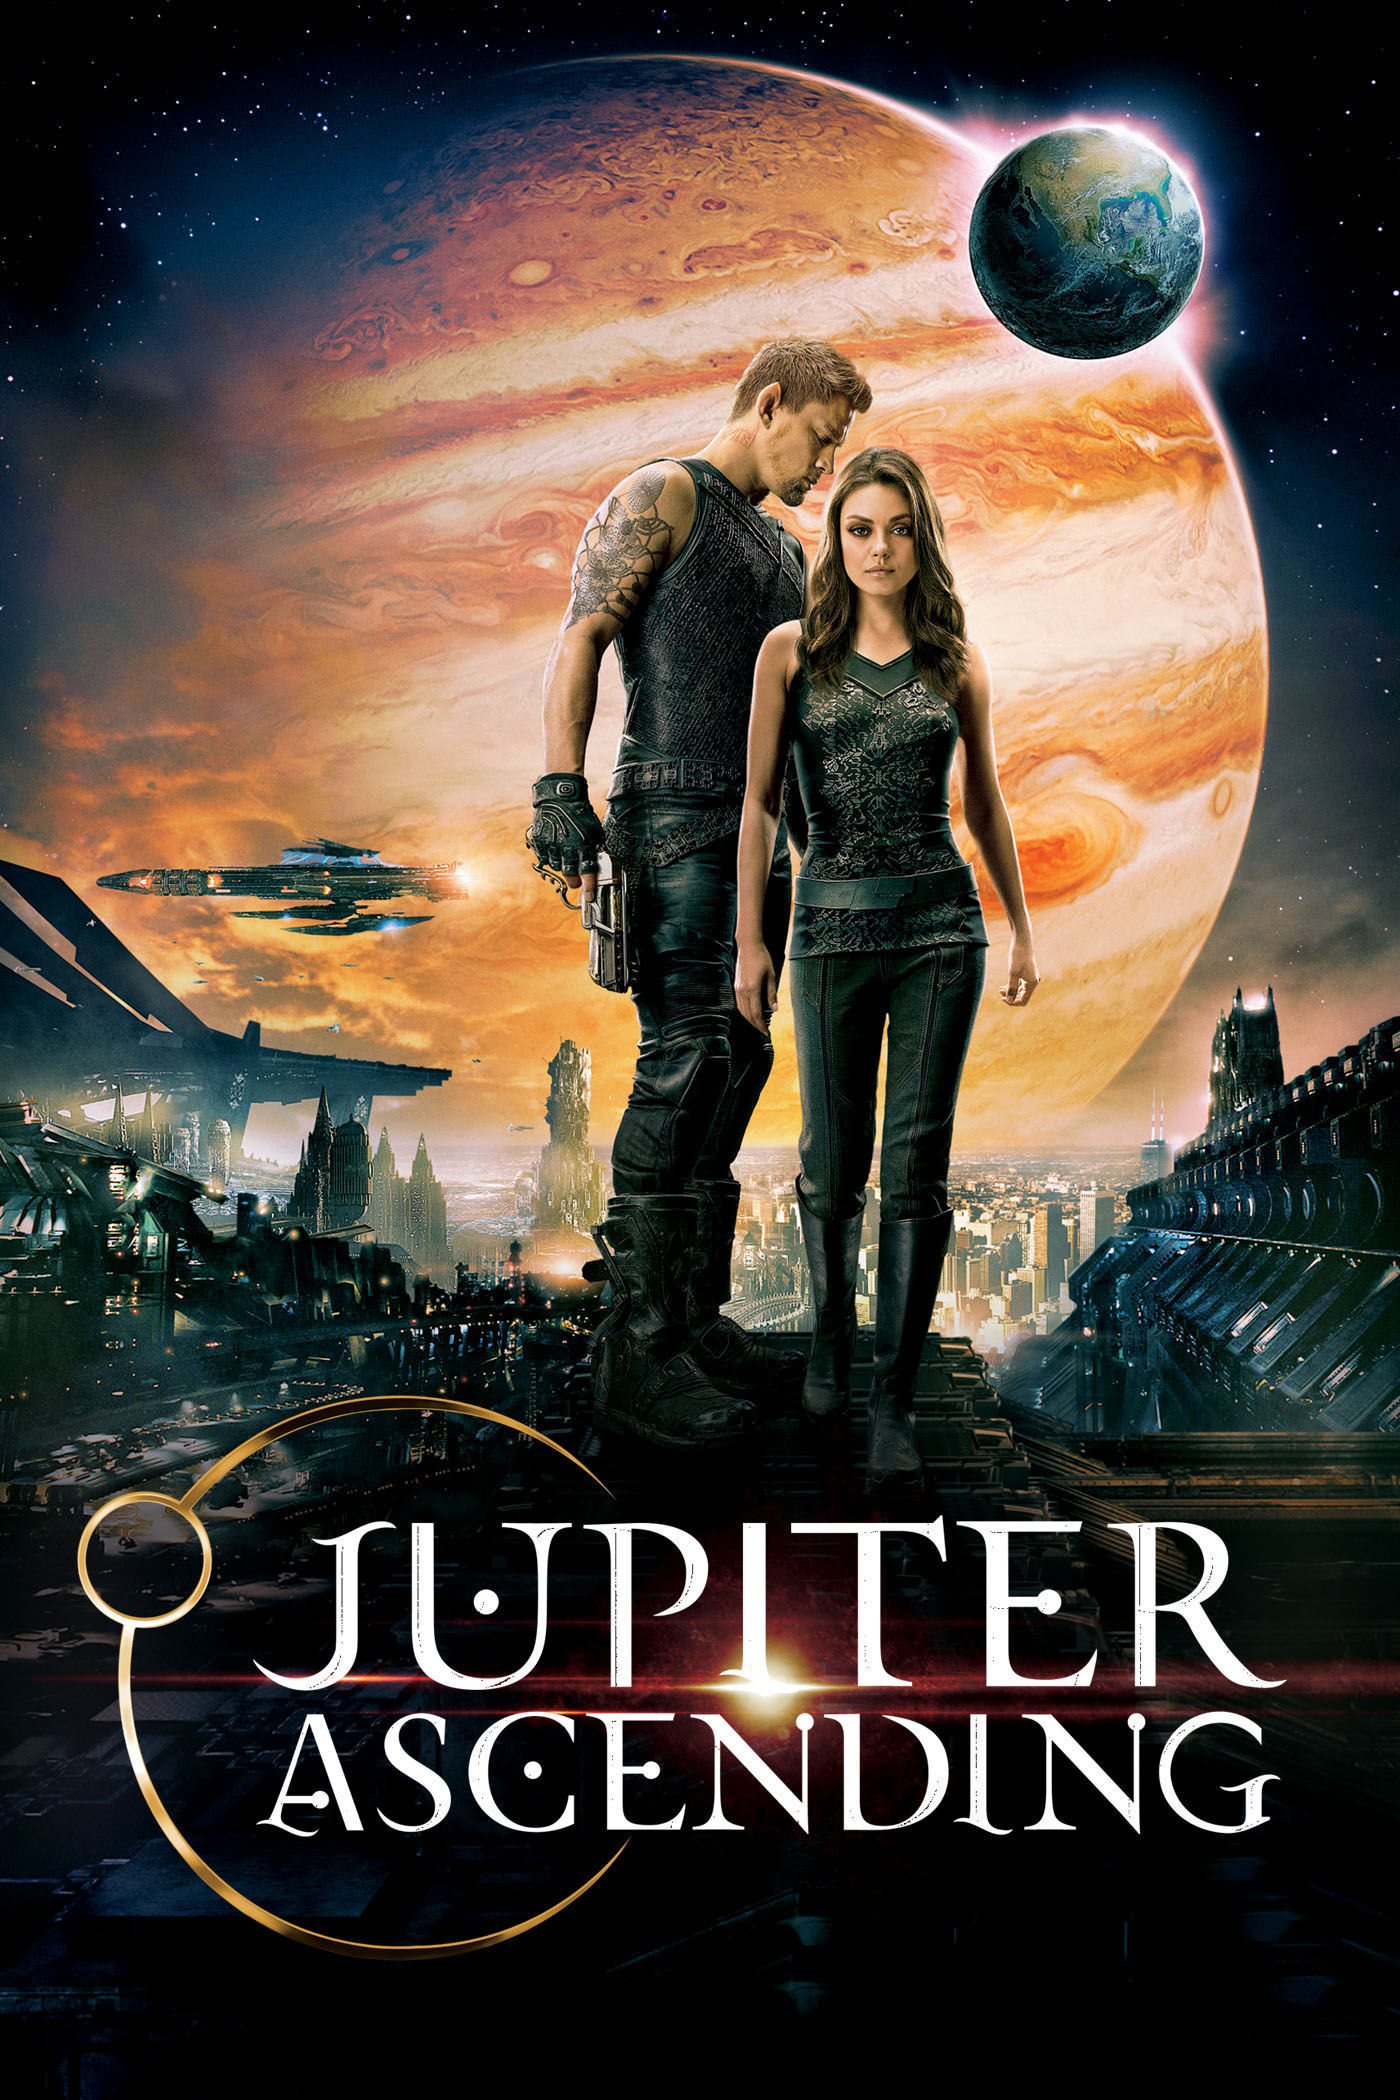 Jupiter Ascending – I quite liked this movie.